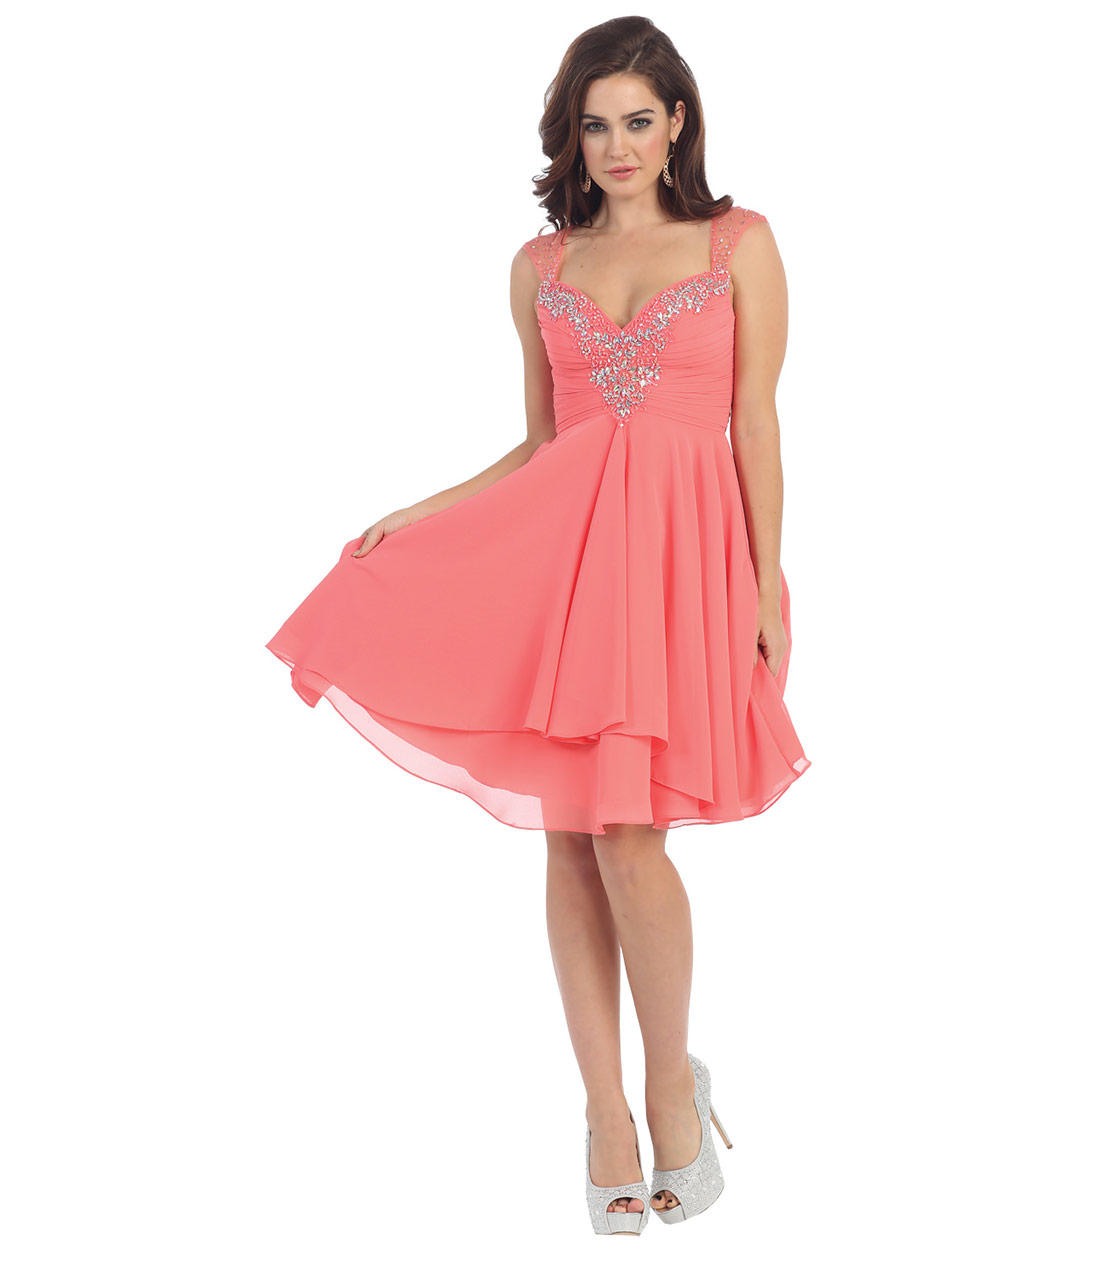 Coral Pink Fun Amp Flirty Short Dress 2015 From Unique Vintage